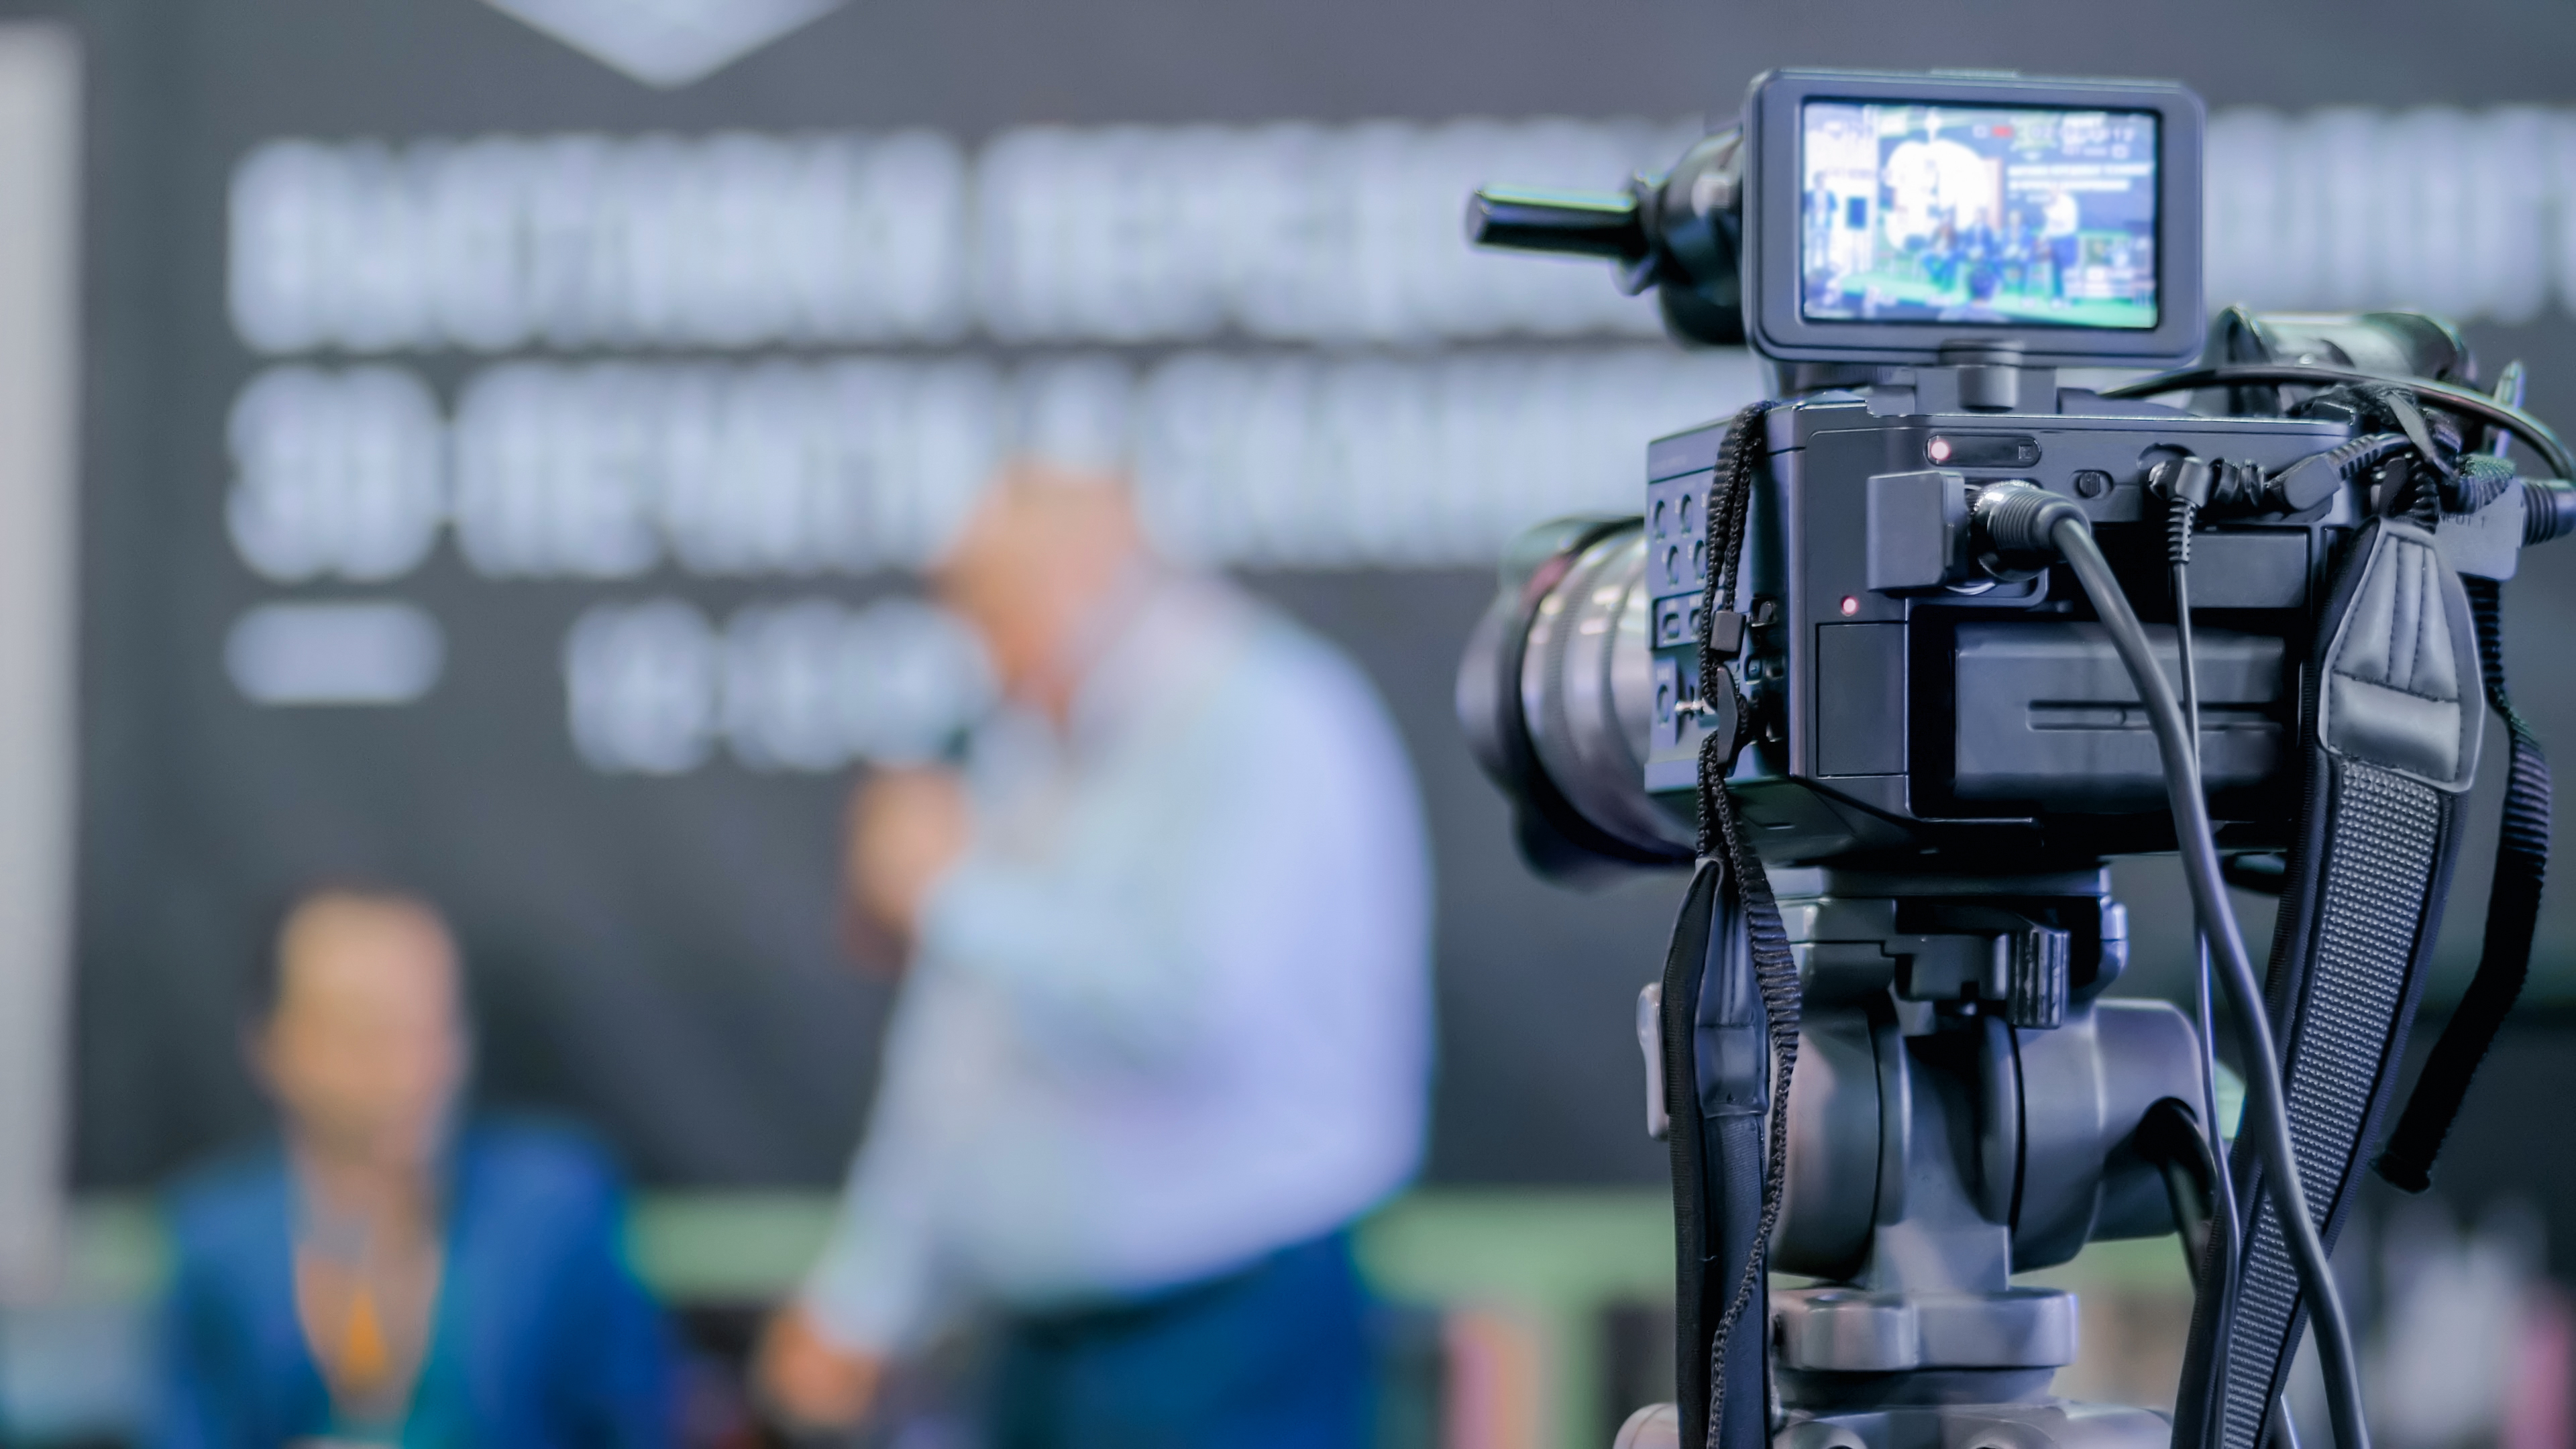 How much does a video marketing consultant cost? [Interview]